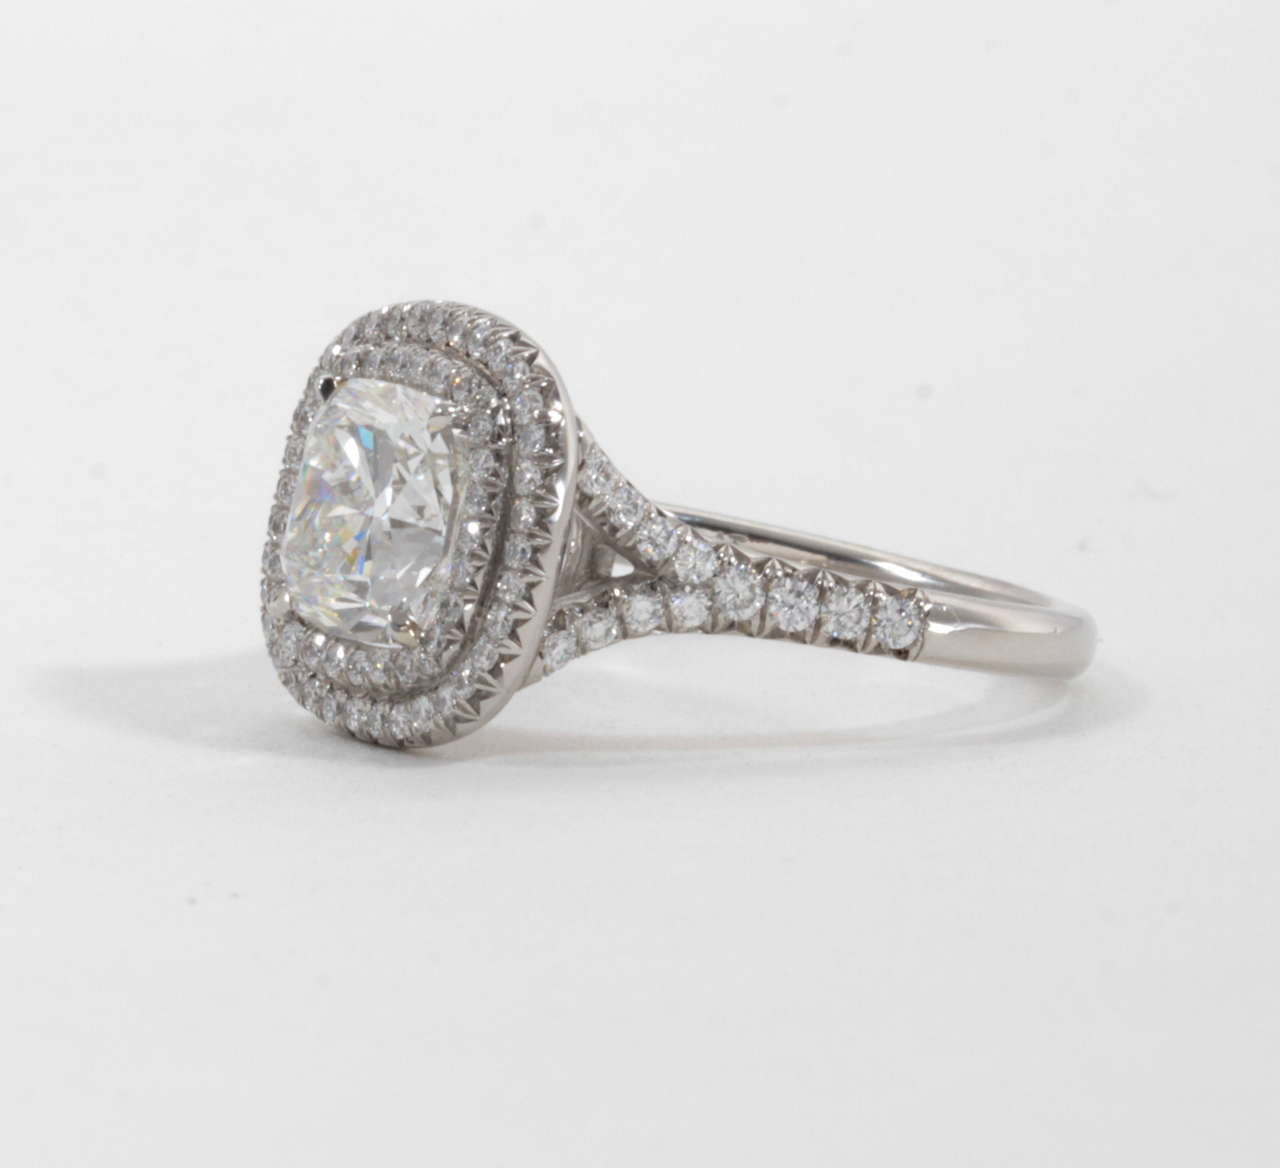 GIA Certified Cushion Cut Double Halo Diamond Engagement Ring For Sale at 1st